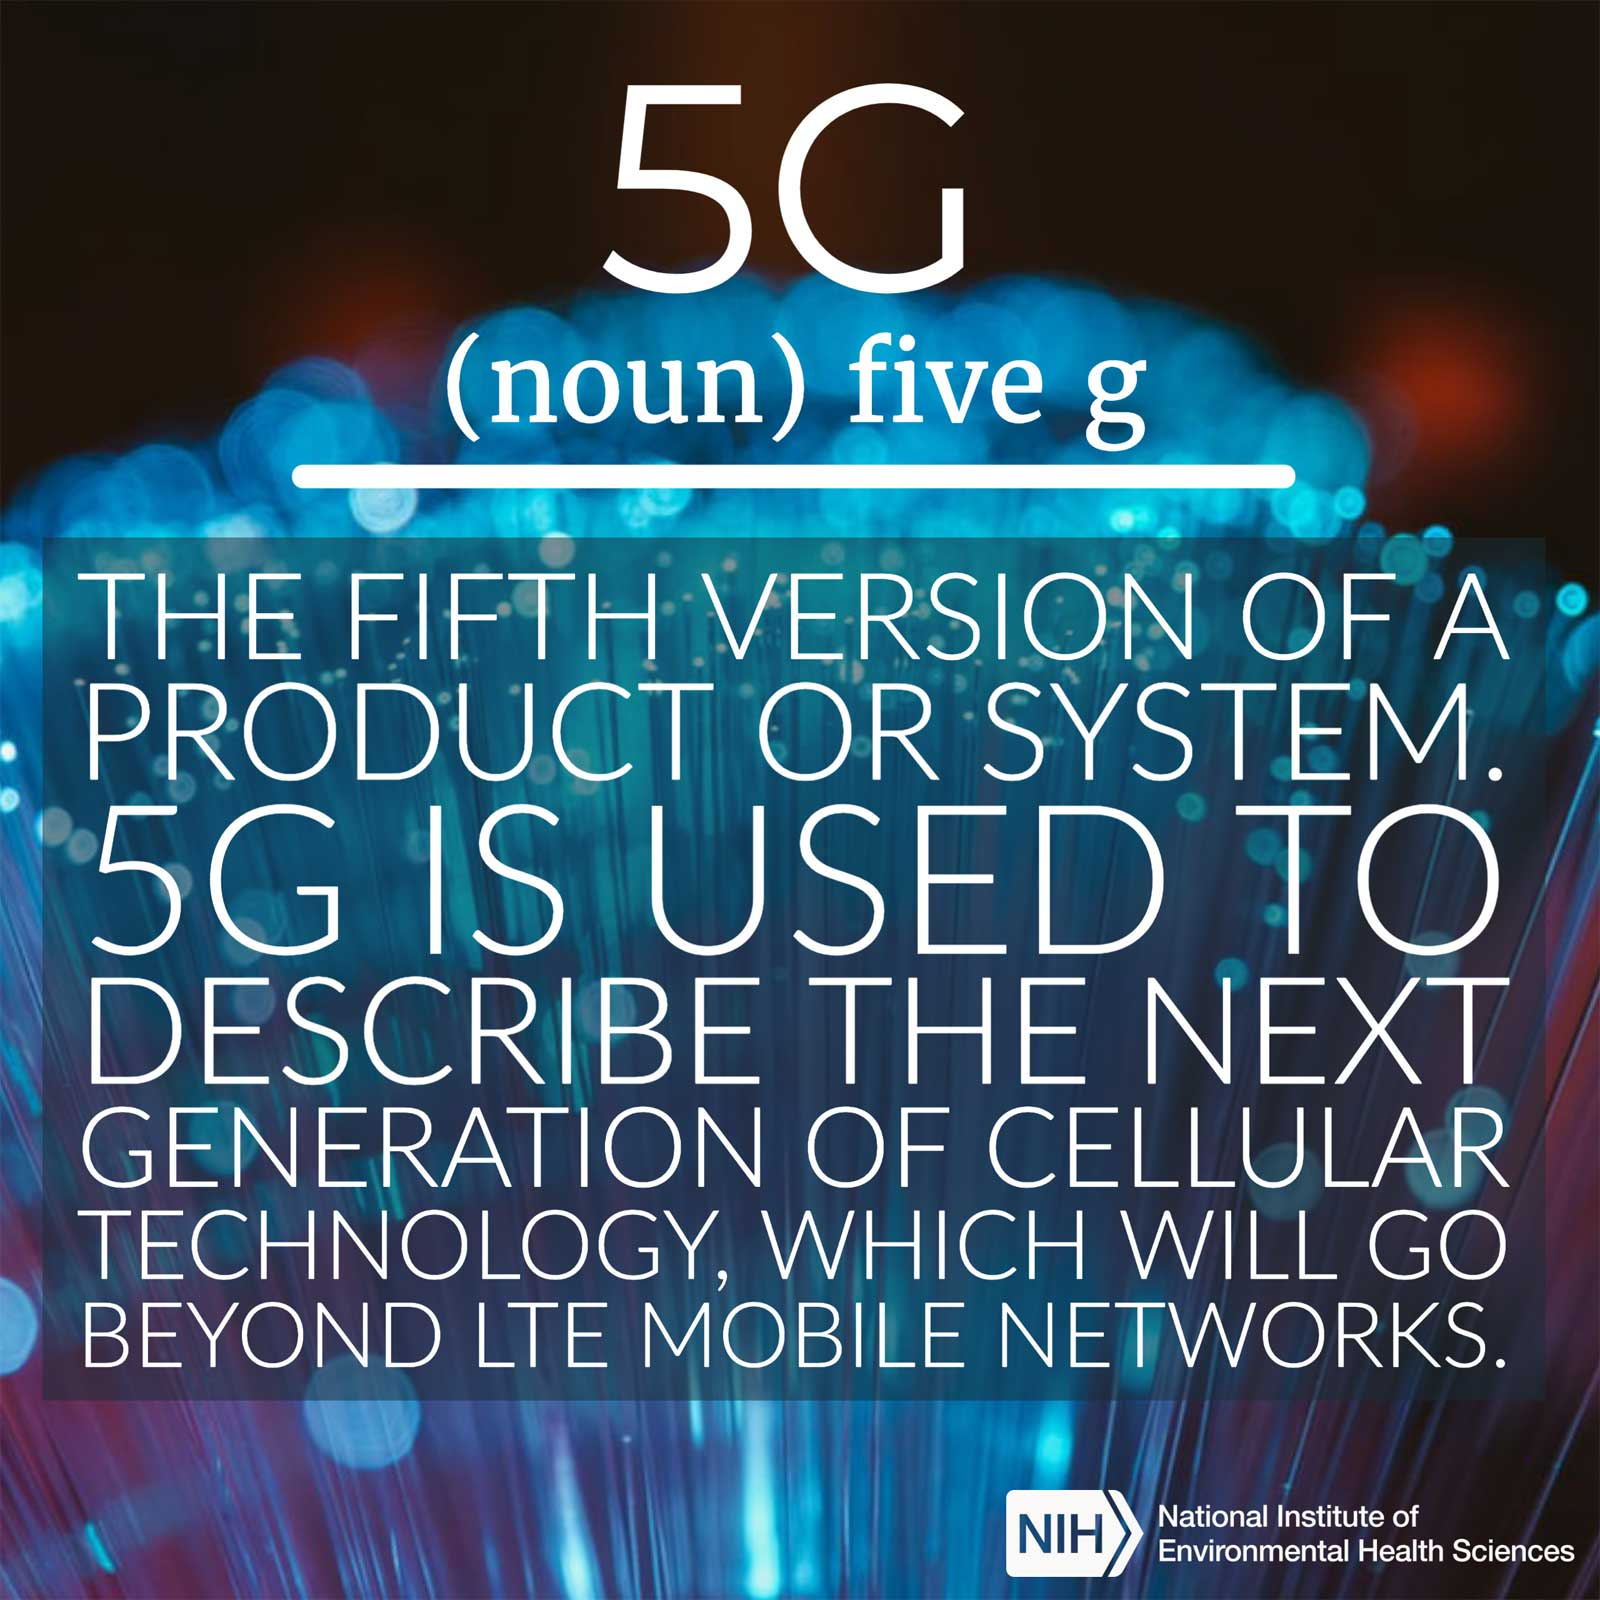 5G (noun) defined as 'the fifth version os a product or system. 5G is used to describe the next generation of cellular technology, which will go beyond LTE mobile networks'